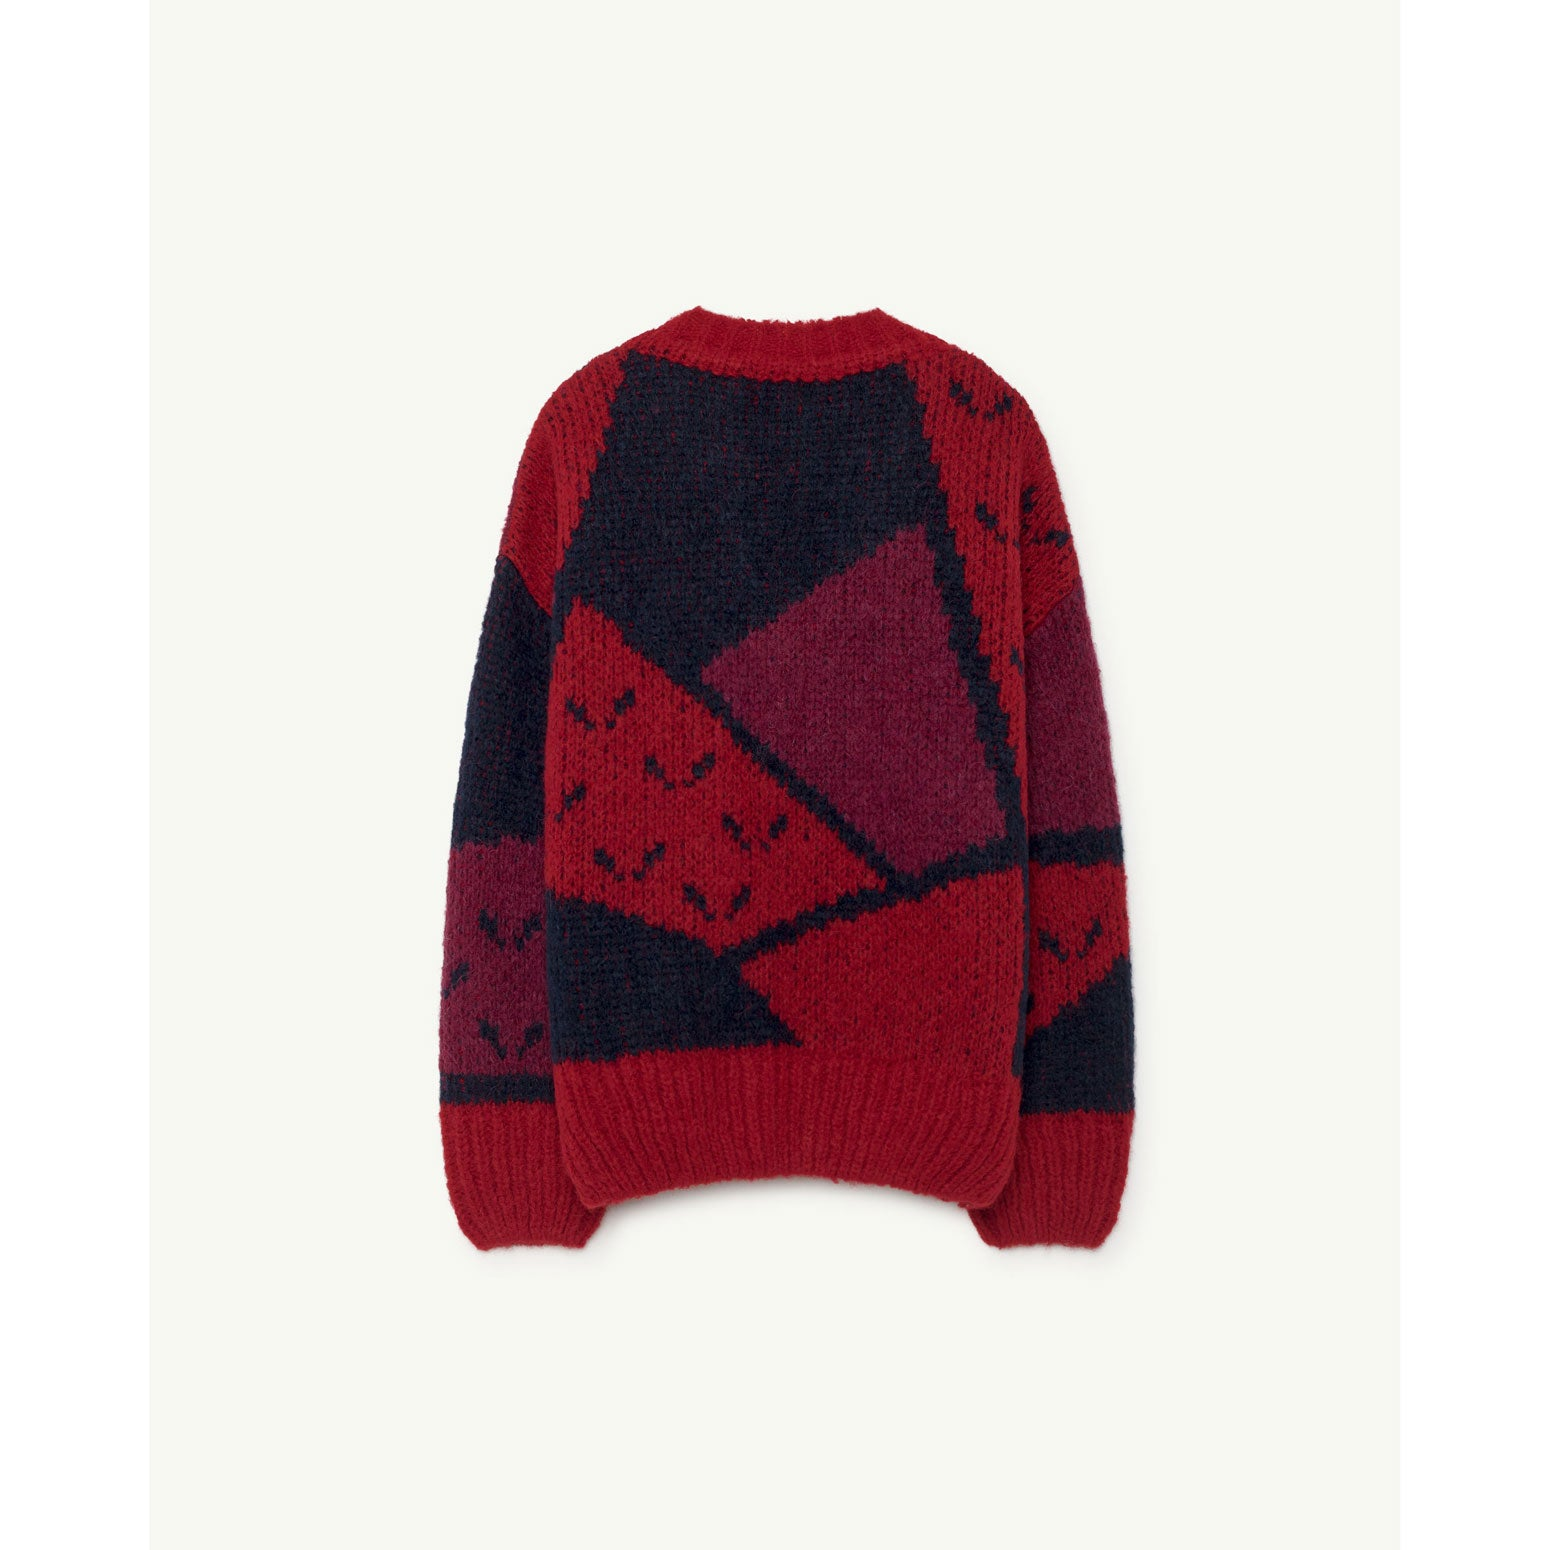 2e2dd9aa7fa2 The Animals Observatory Red Apple Arty Peasant Cardigan